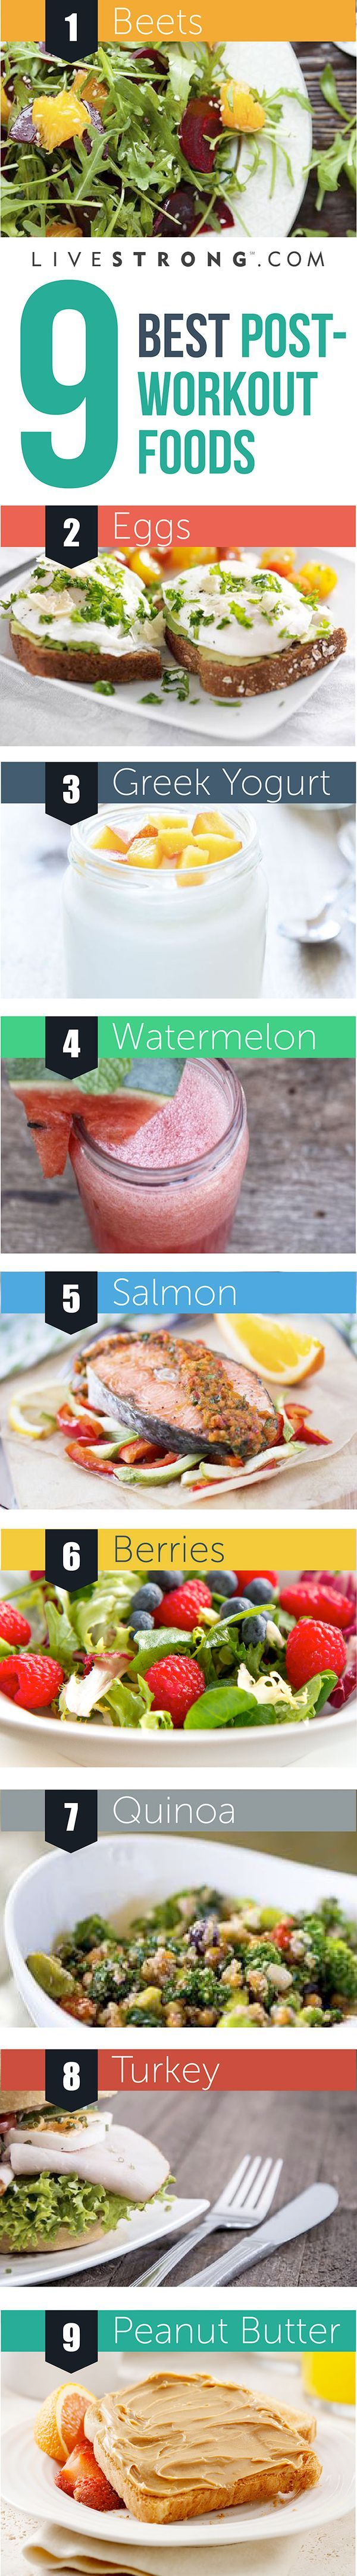 Refuel with these 9 post-workout foods!